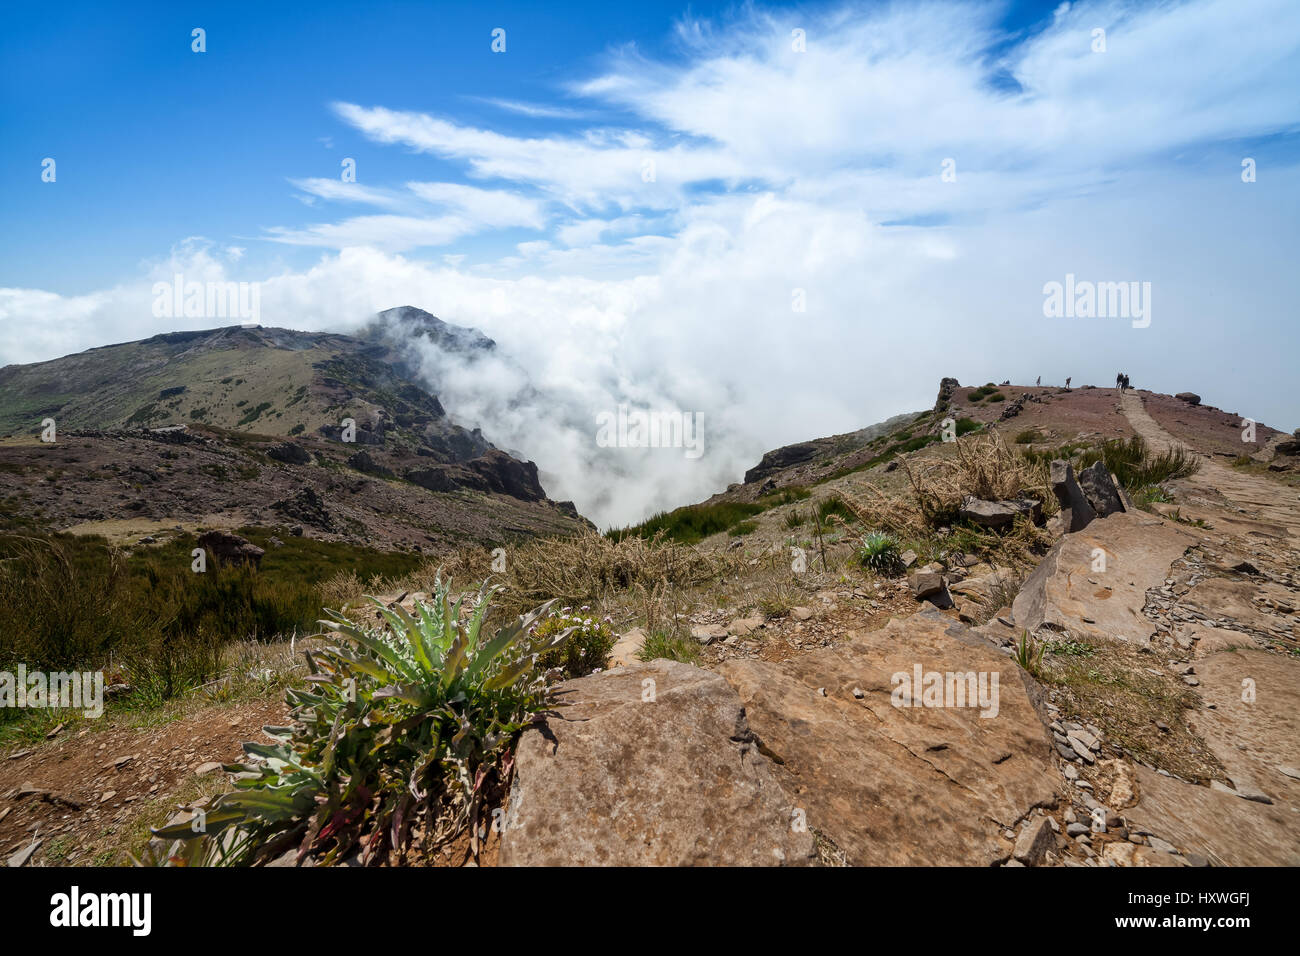 Mountain landscape, Madeira Islands, Pico do Arieiro - Stock Image